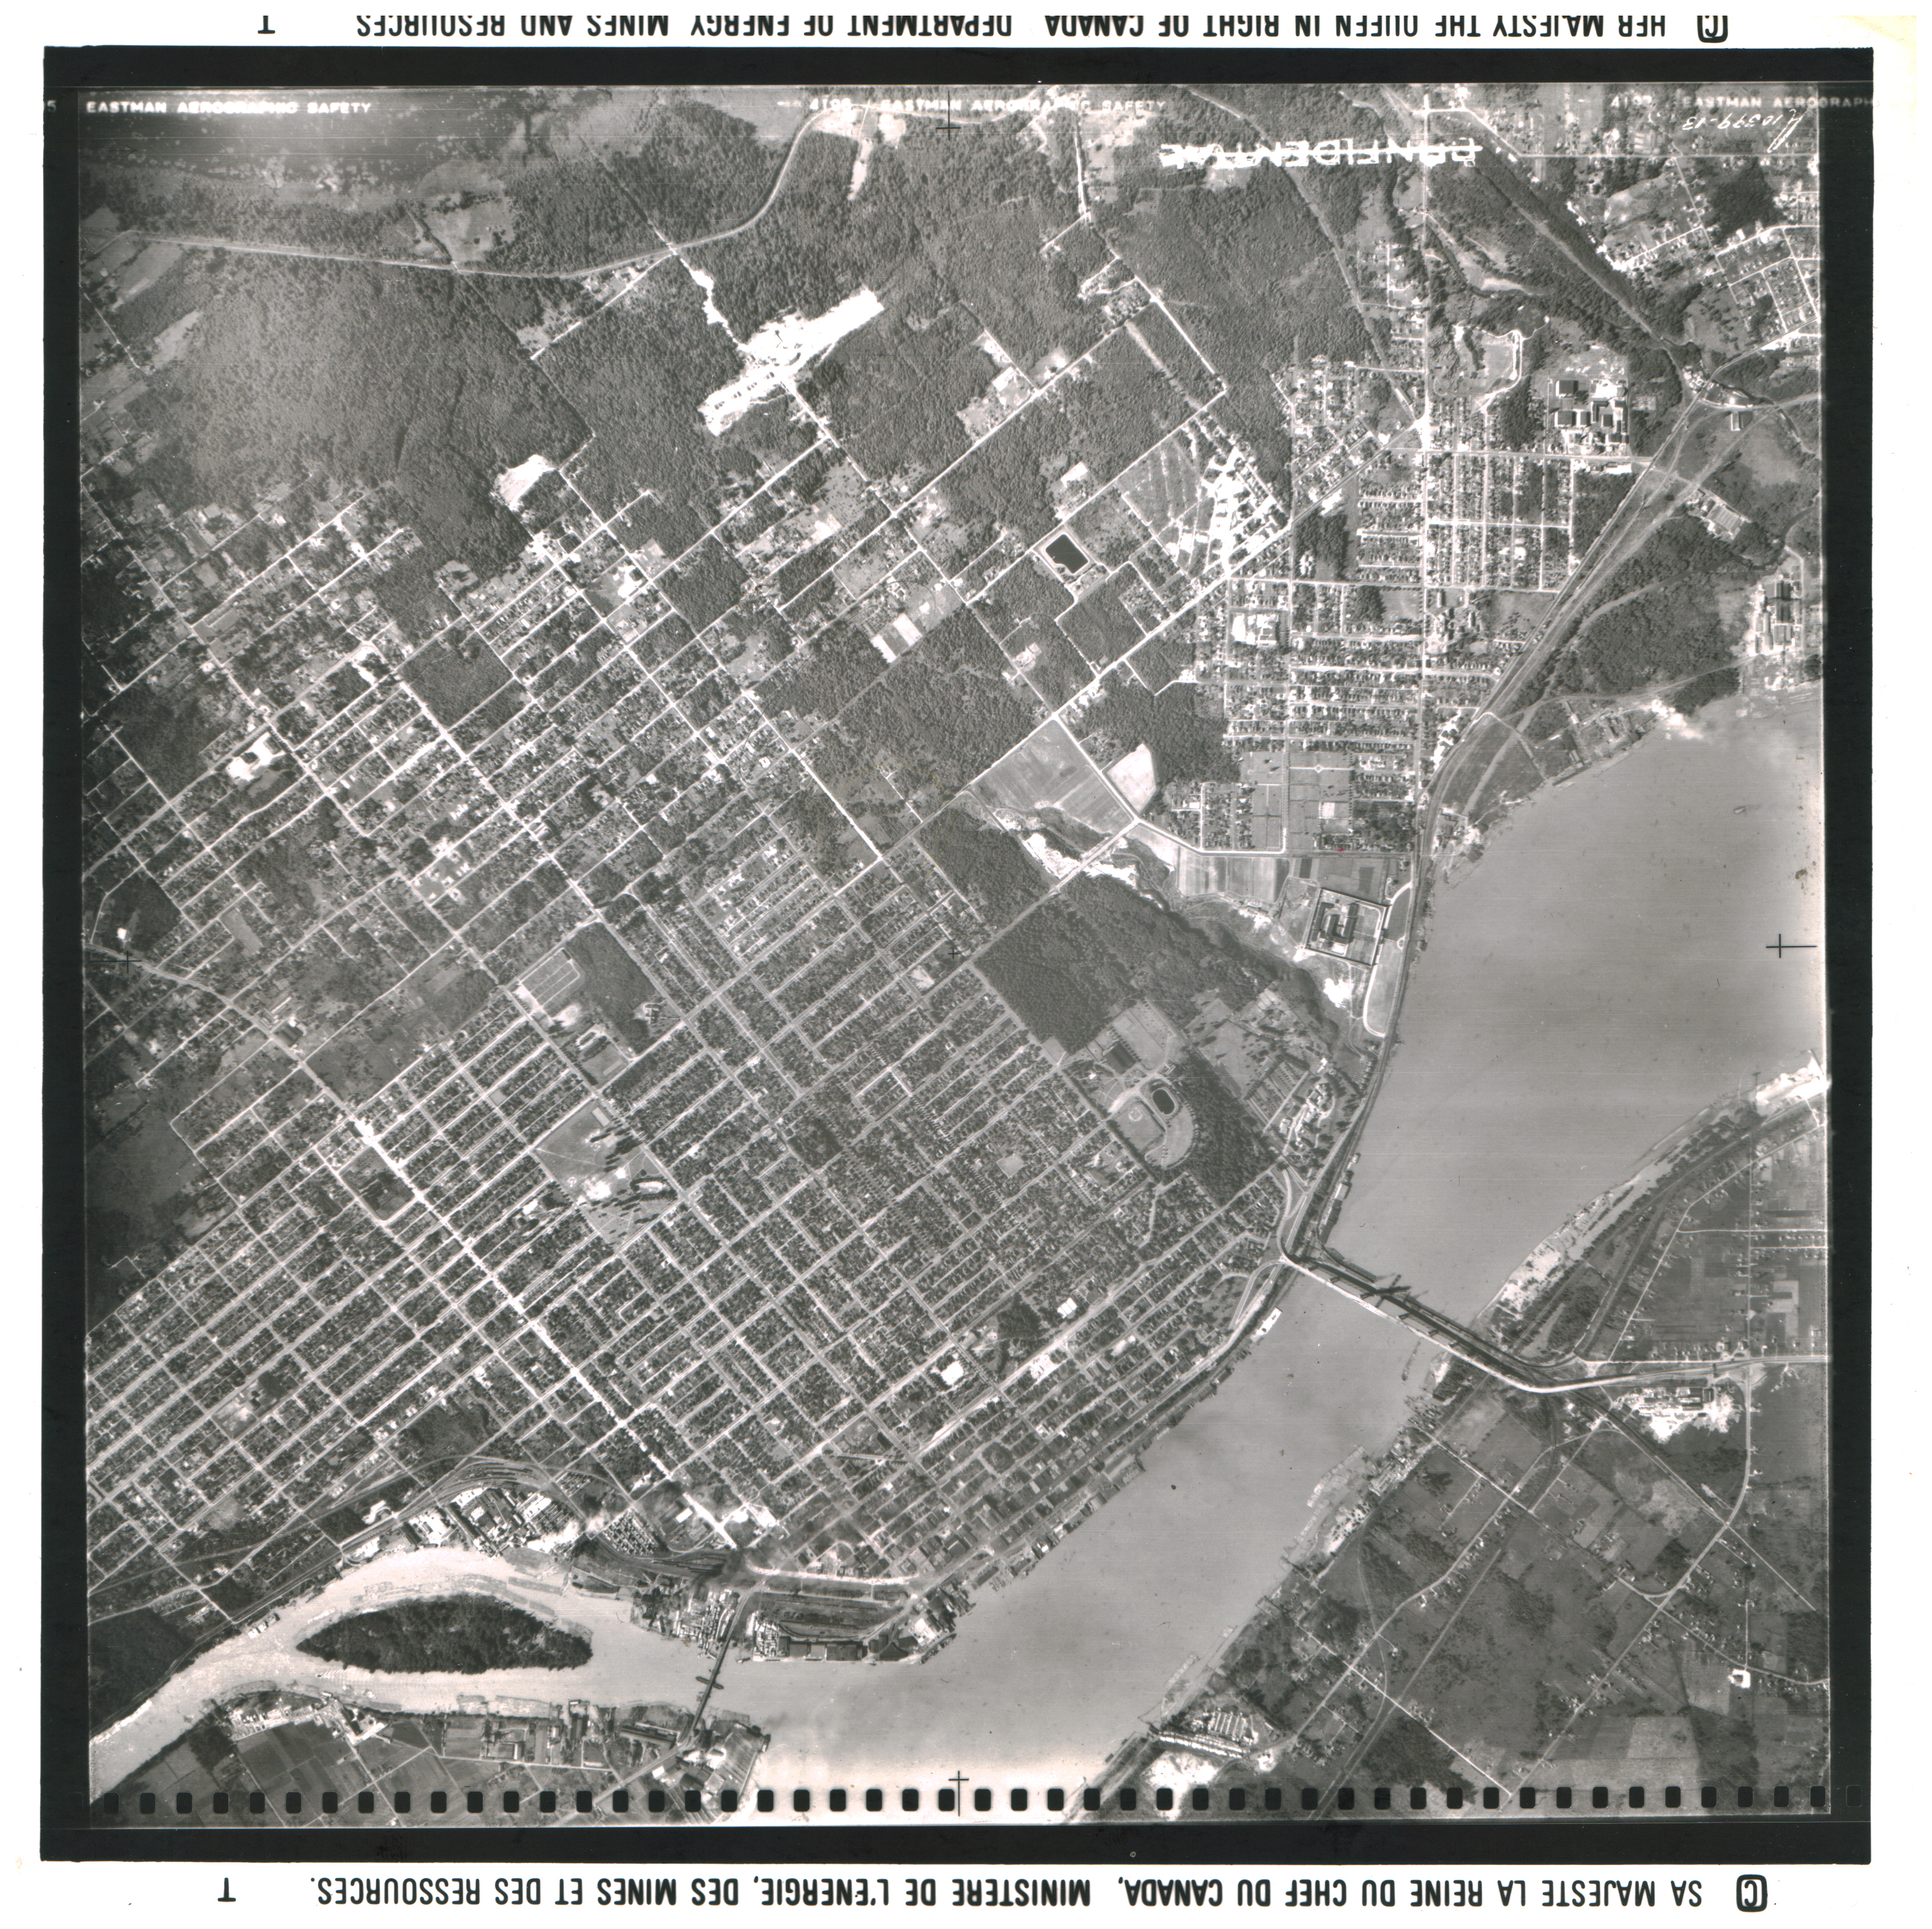 Public domain image provided courtesy of the National Air Photo Library